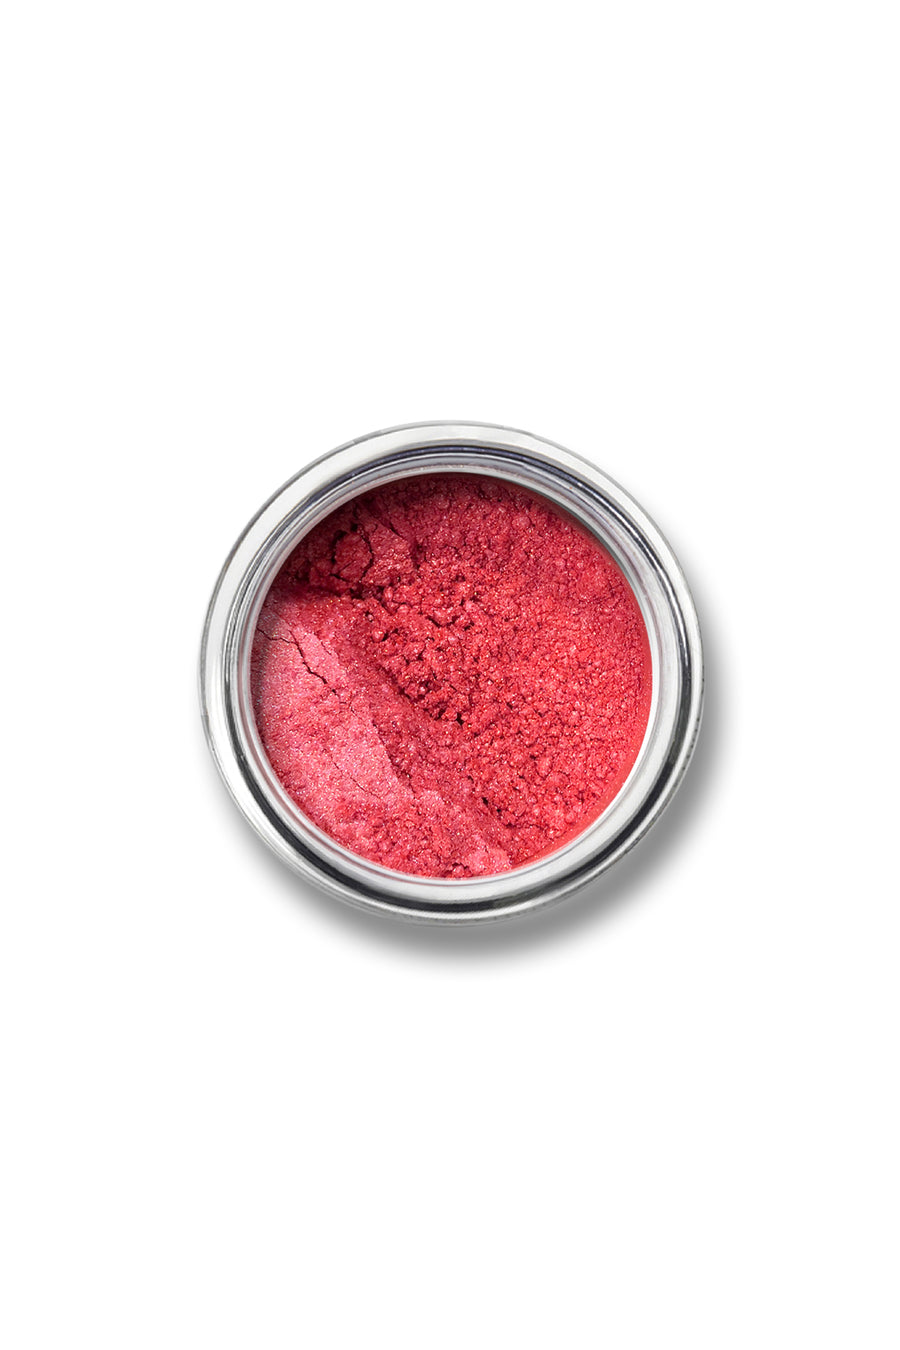 Shimmer Eyeshadow #61 - Peachy Red - Blend Mineral Cosmetics